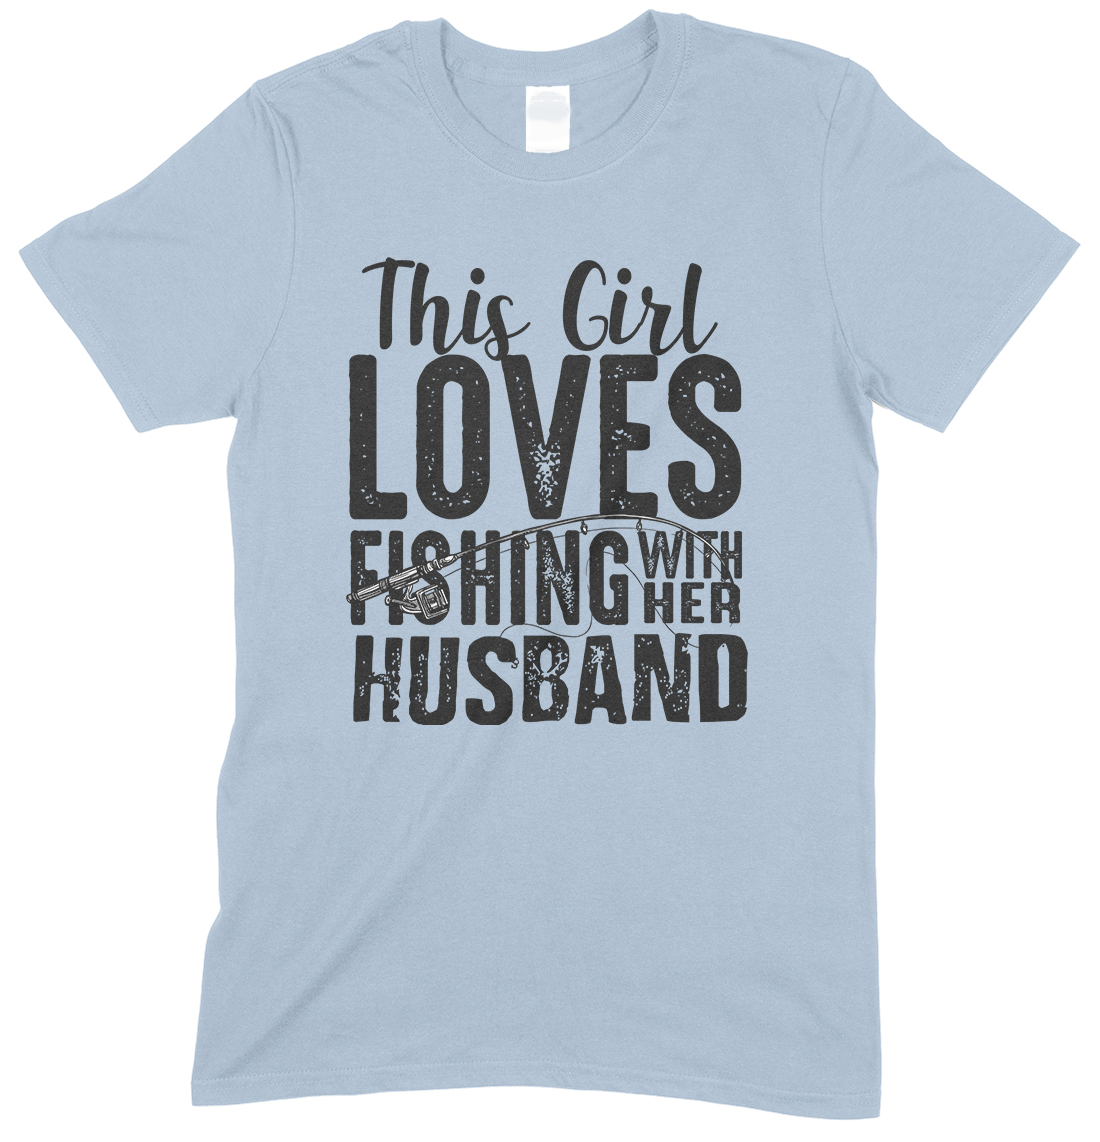 This Girl Loves Fishing with Her Husband - Unisex T Shirt